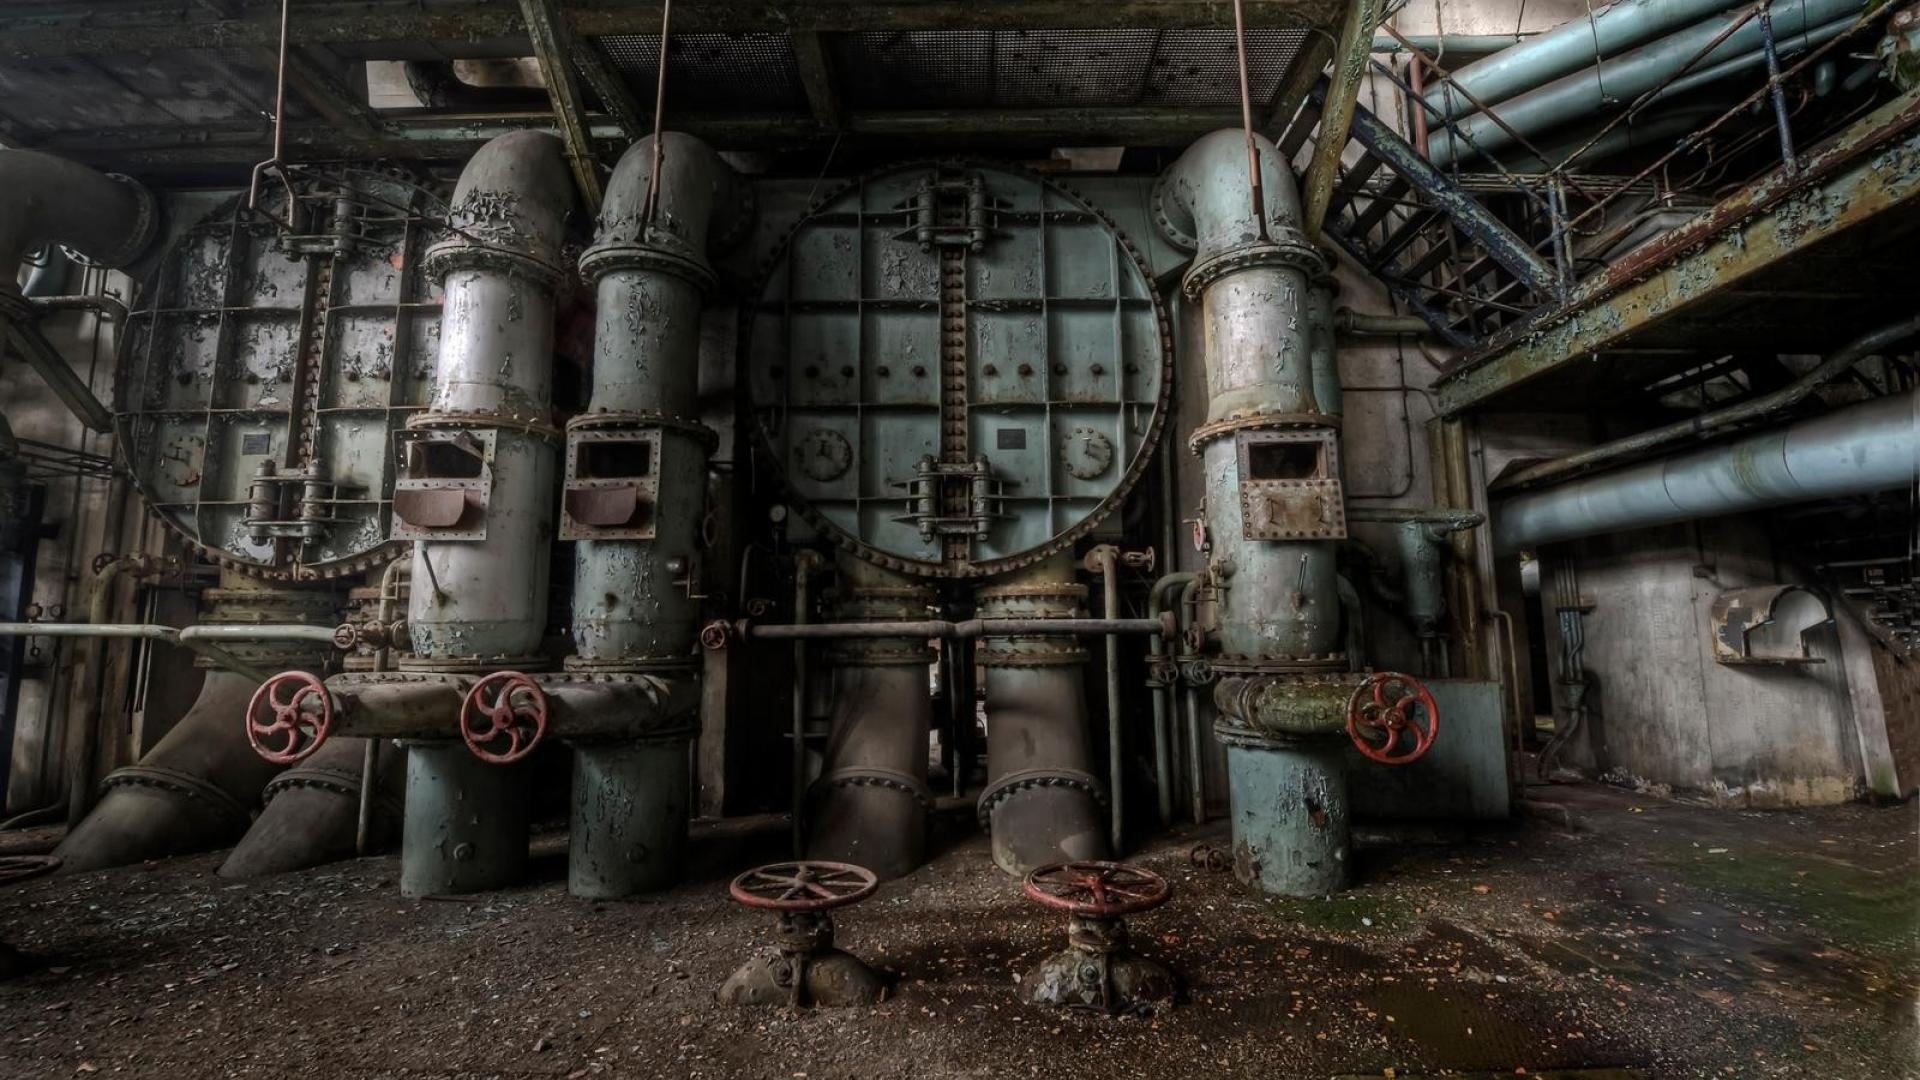 Cityscapes europe machinery abandoned factory wallpaper 1920x1080